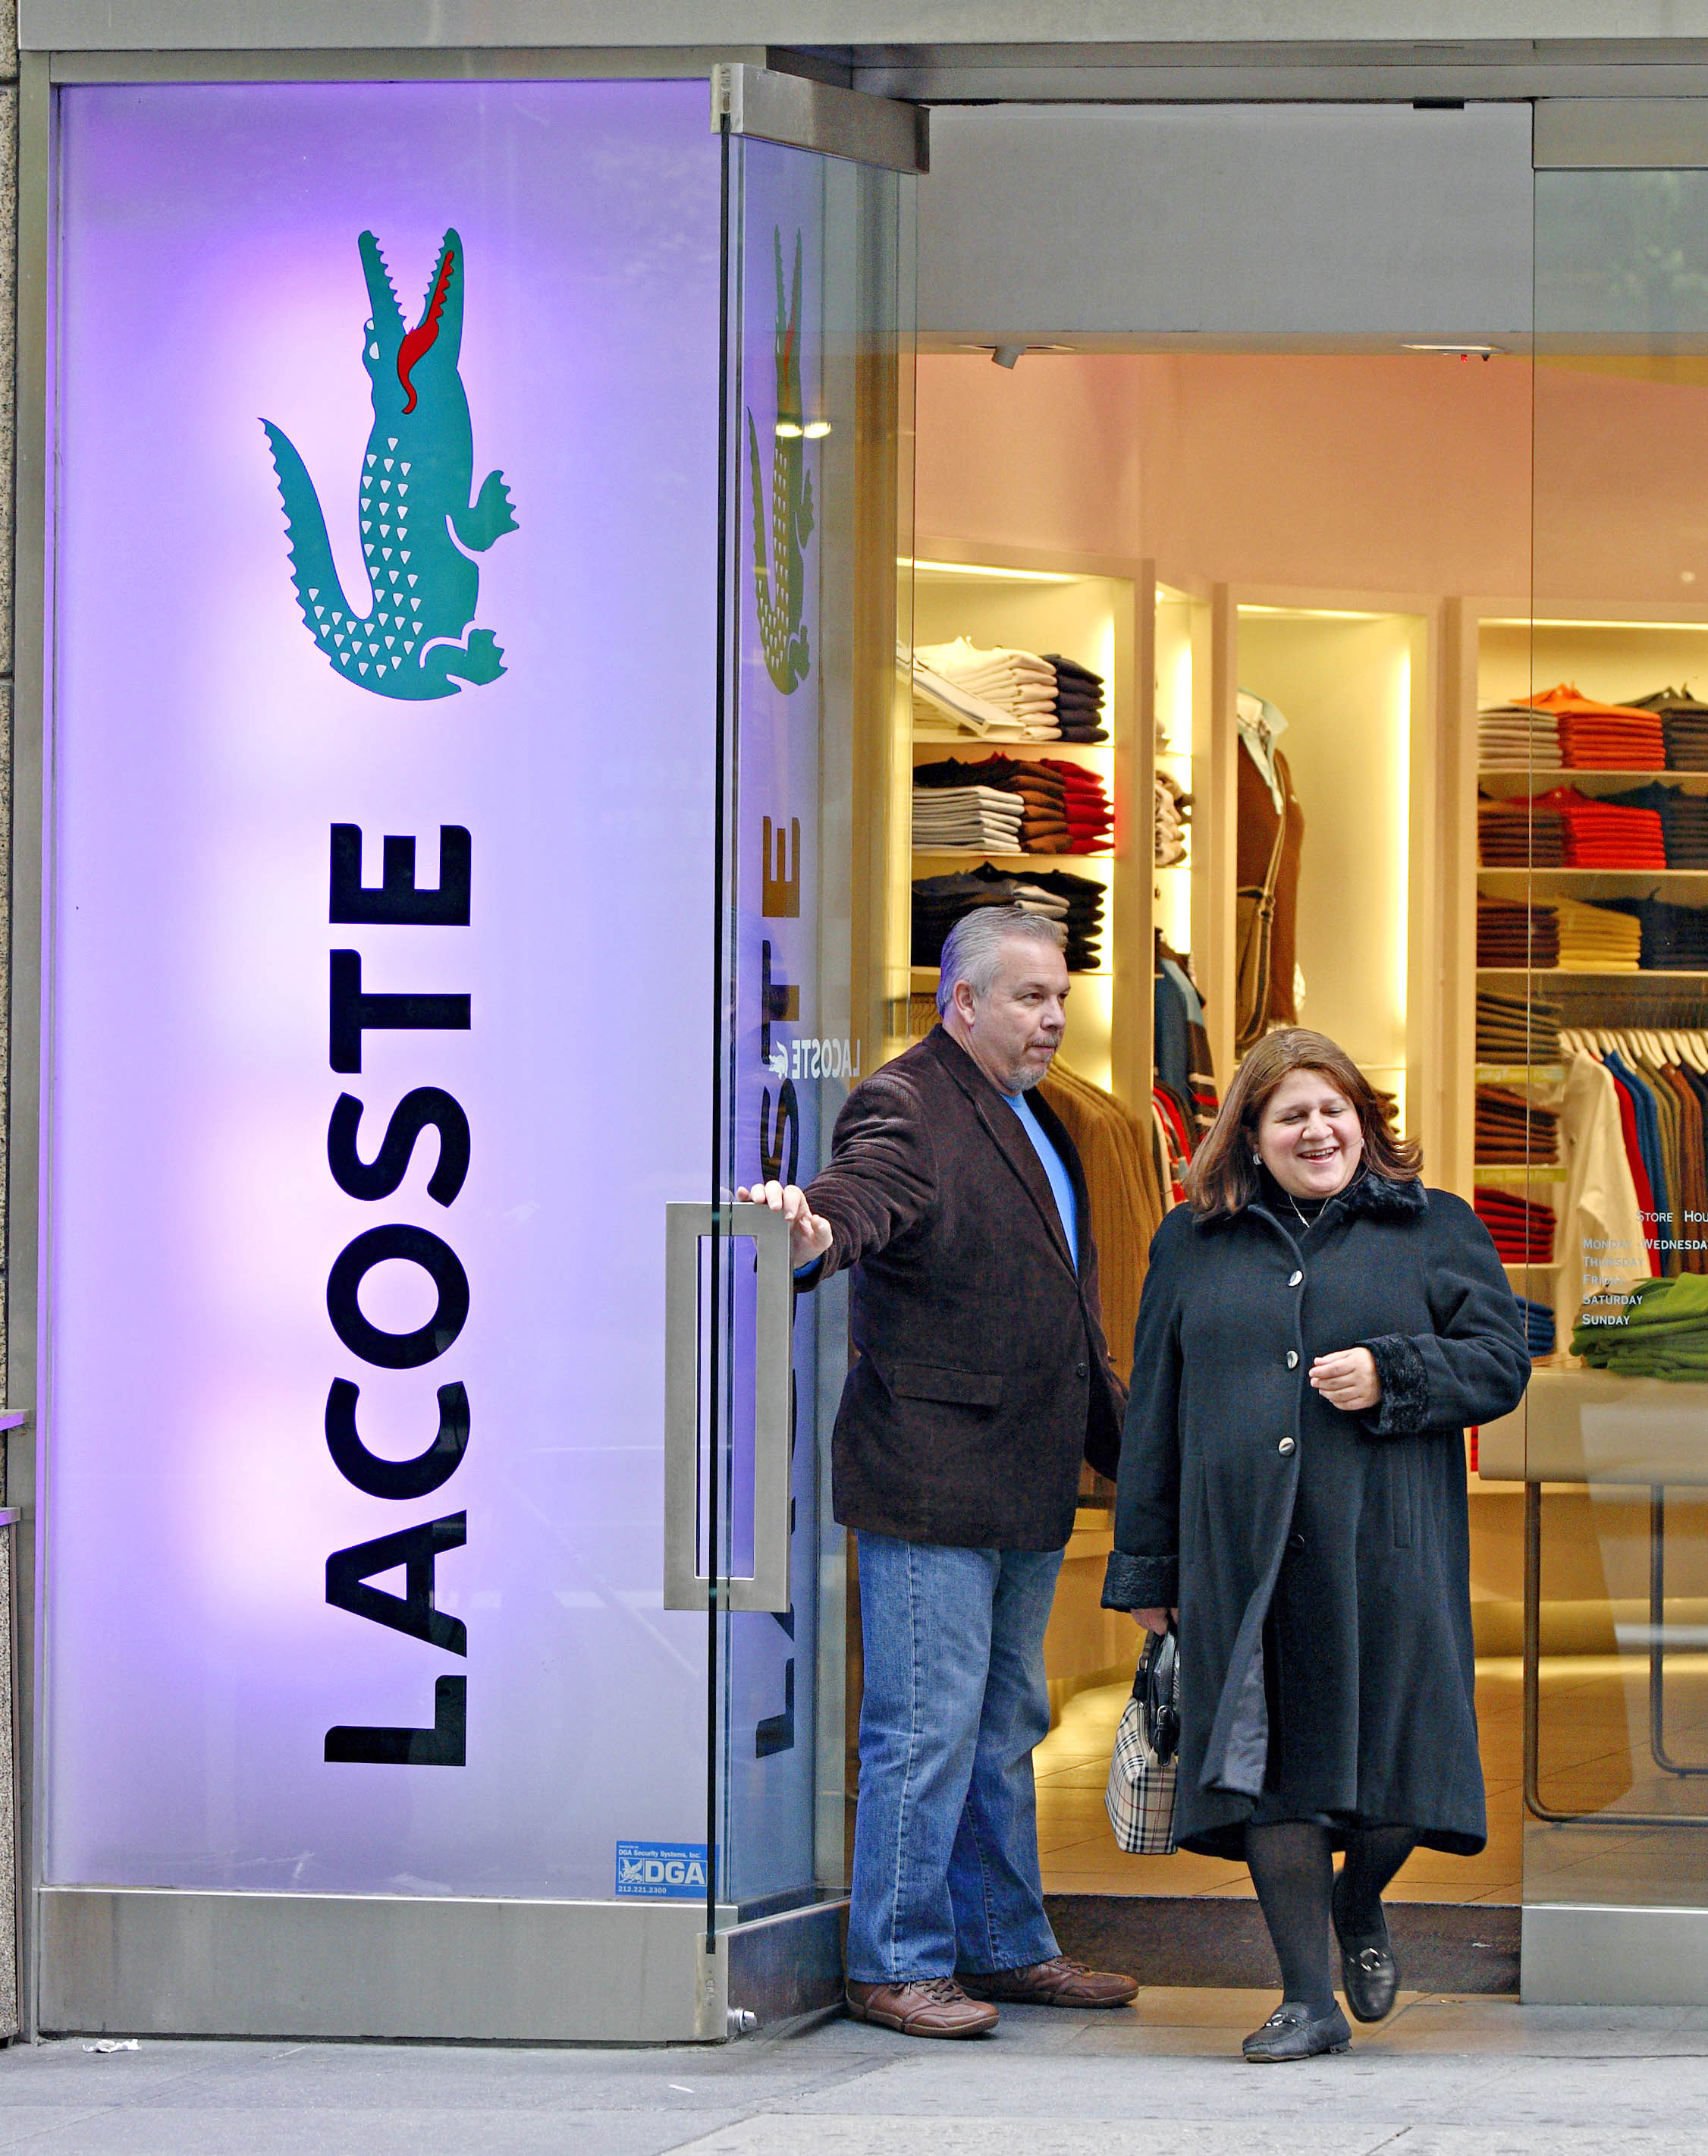 A shopper exits a Lacoste clothing store located on Madison Avenue in New York, New York in October 2006.